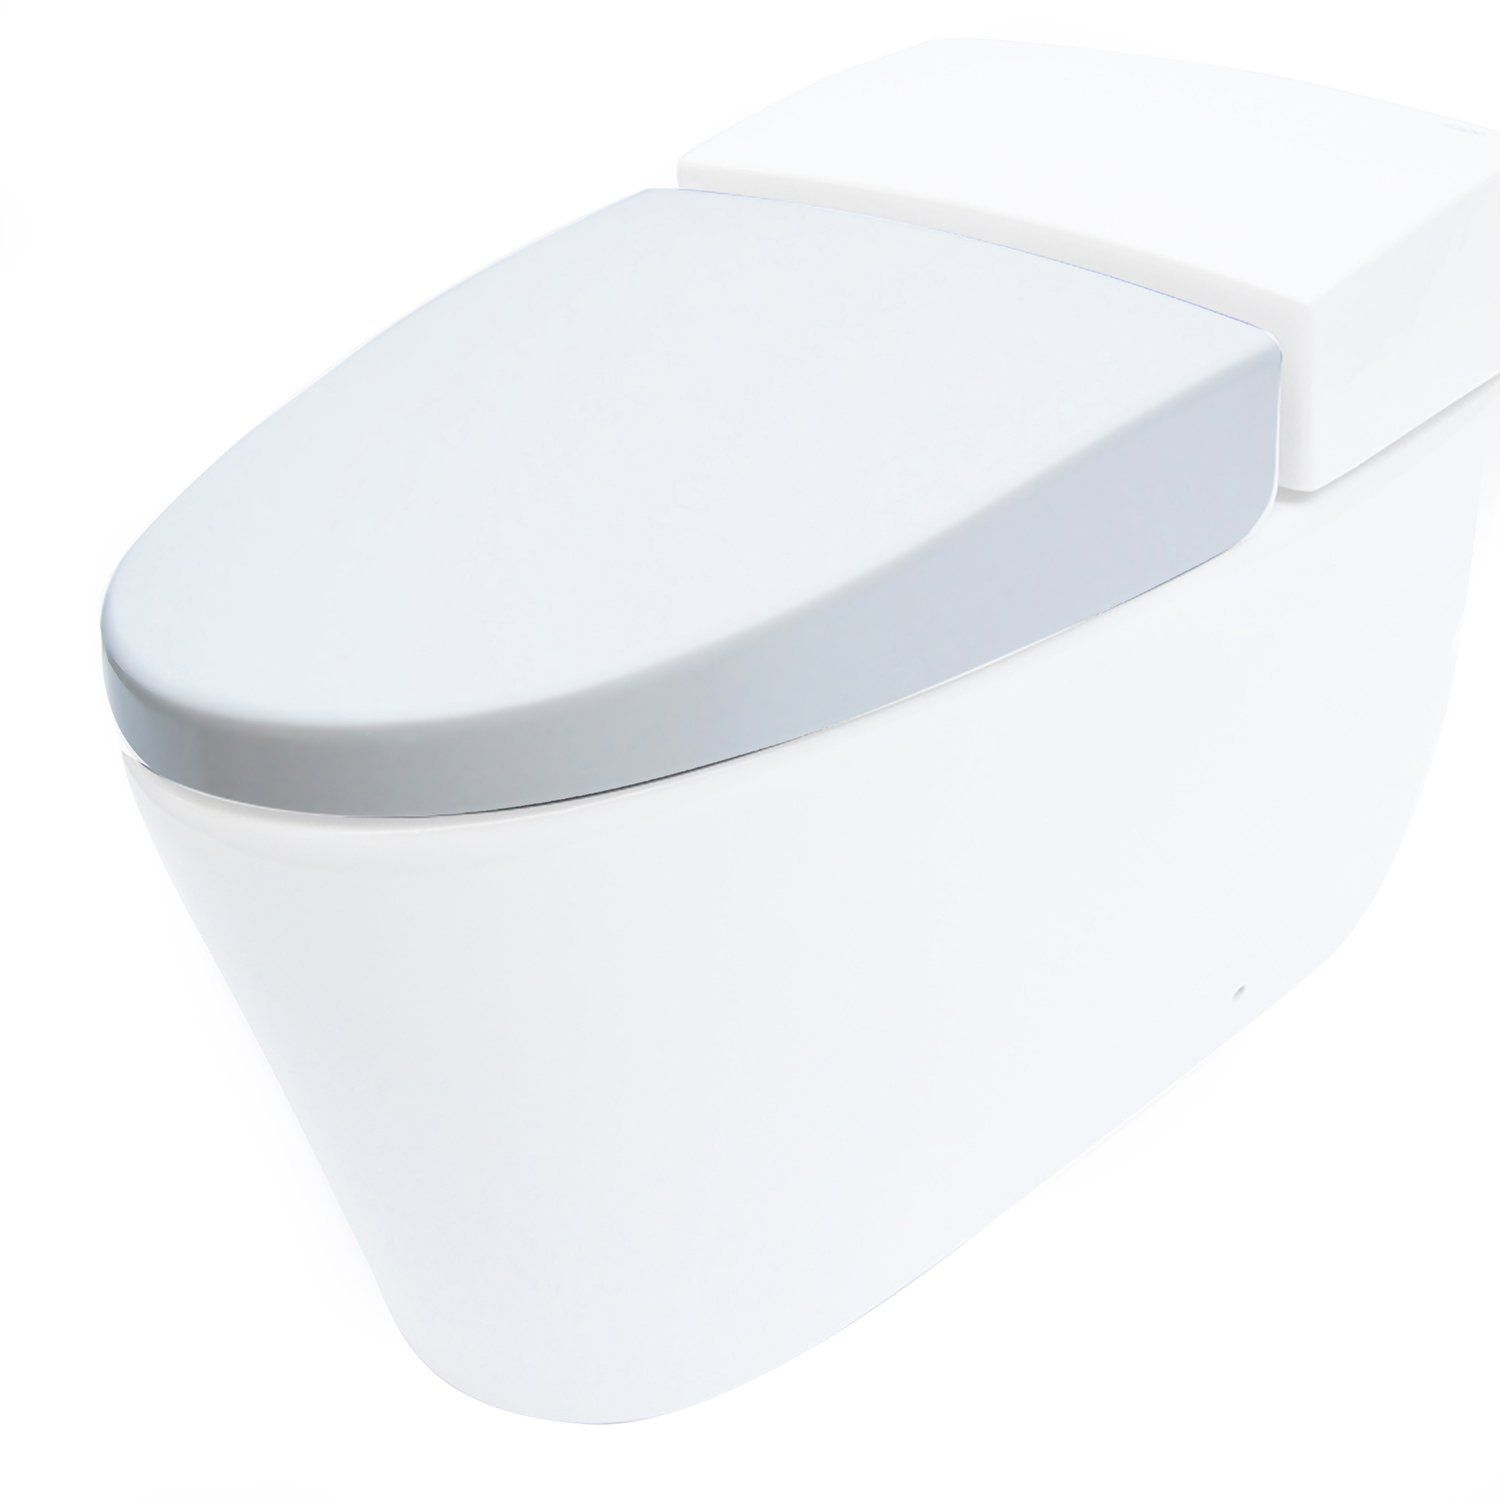 Eago R 340seat Replacement Soft Closing Toilet Seat For Tb340